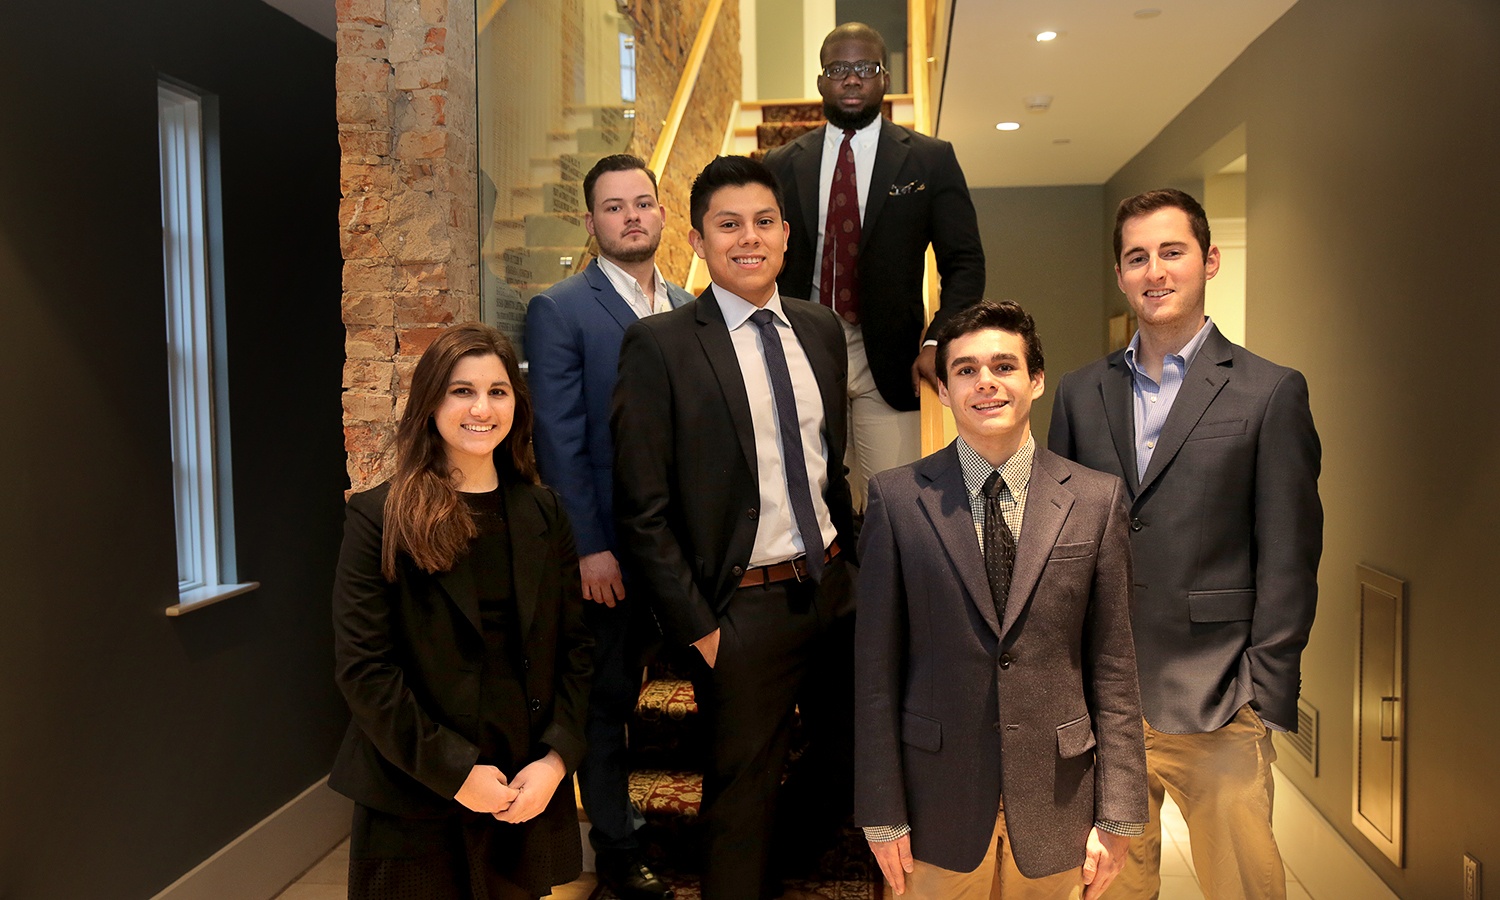 The Stu Lieblien '90 Pitch Contest finalists Dominique DeReubis '18, Gyuri Dragomir '18, Angel Salas-Espana '19, Ato Bensti-Enchill, Max Zibitsker '19, and Sam Solomon '17 pose for a photo in the Centennial Center for Leadership.